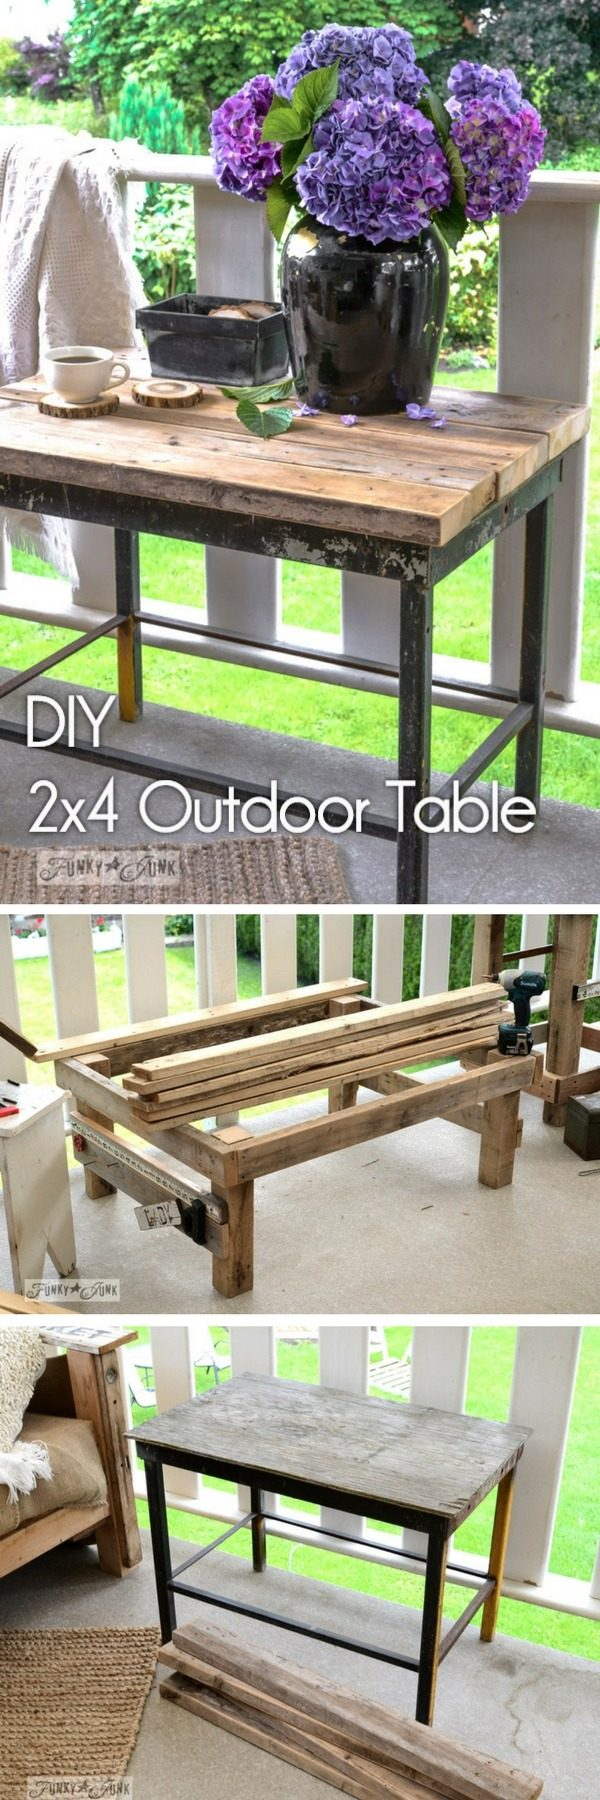 20 Crafty 2x4 DIY Projects That You Can Easily Make - Check out how to make a #DIY #wooden outdoor table from 2x4s #HomeDecorIdeas